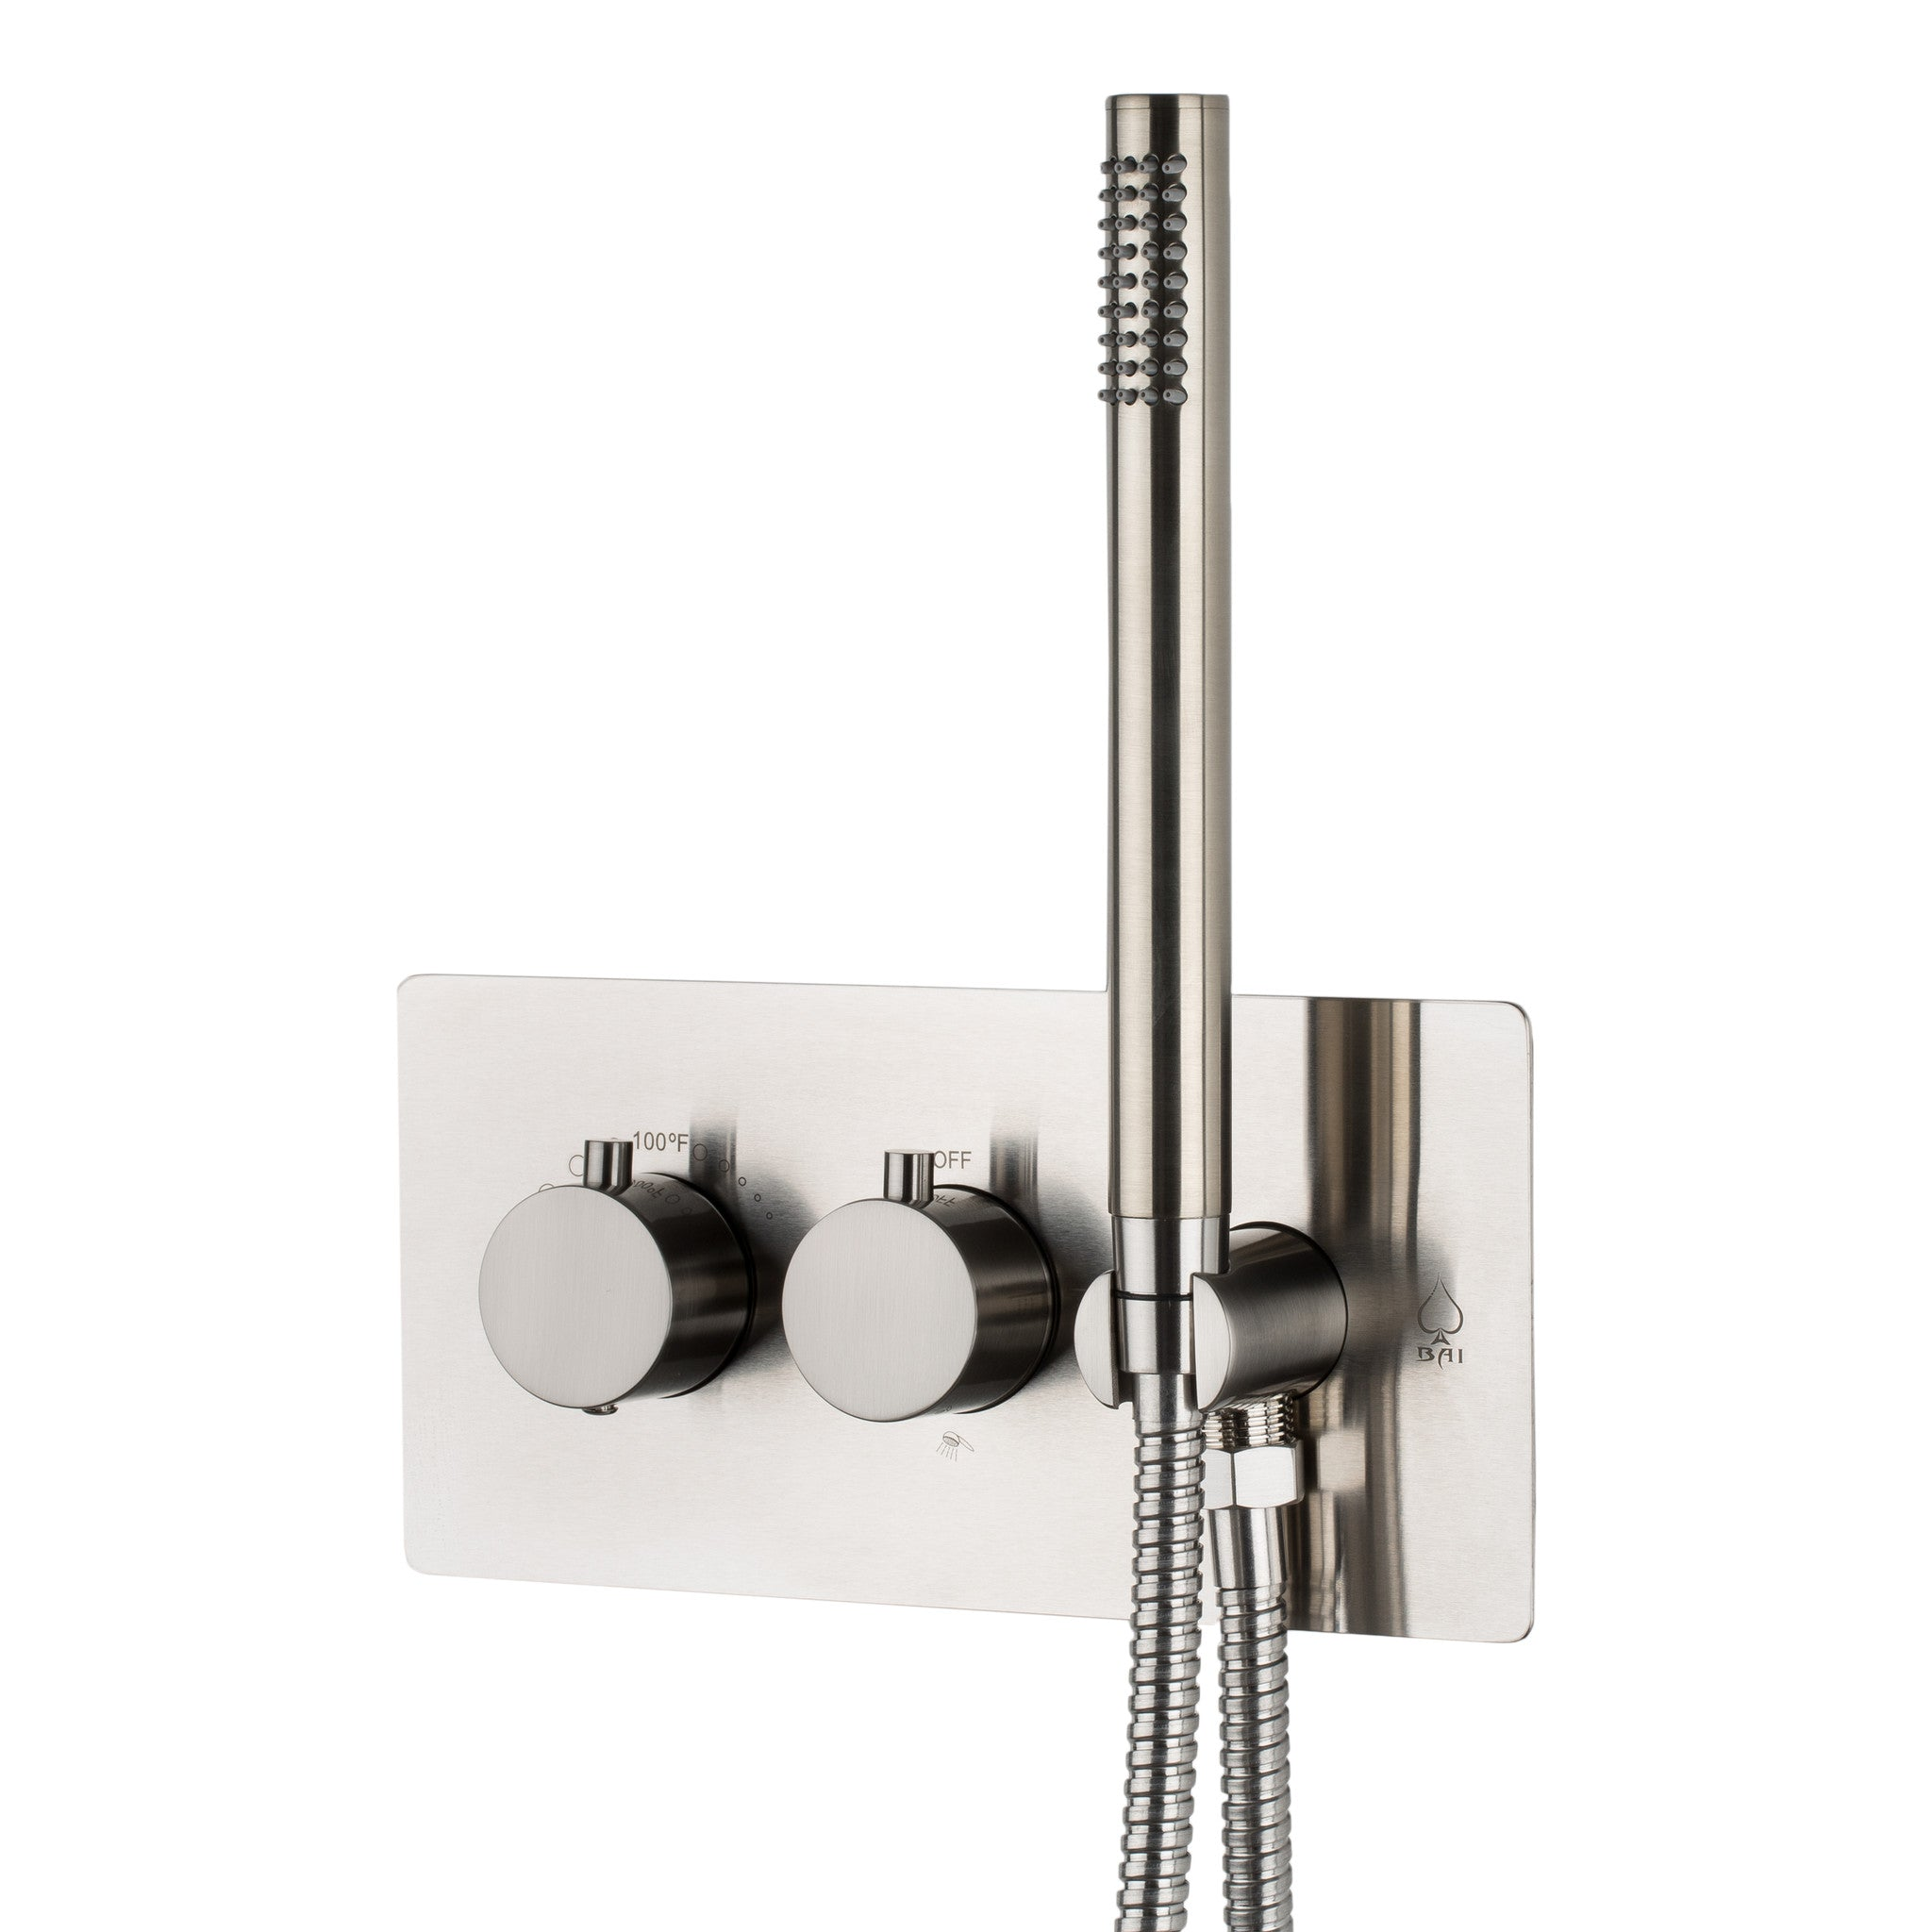 BAI 0132 Concealed Thermostatic Shower Mixer / Valve With Handheld ...